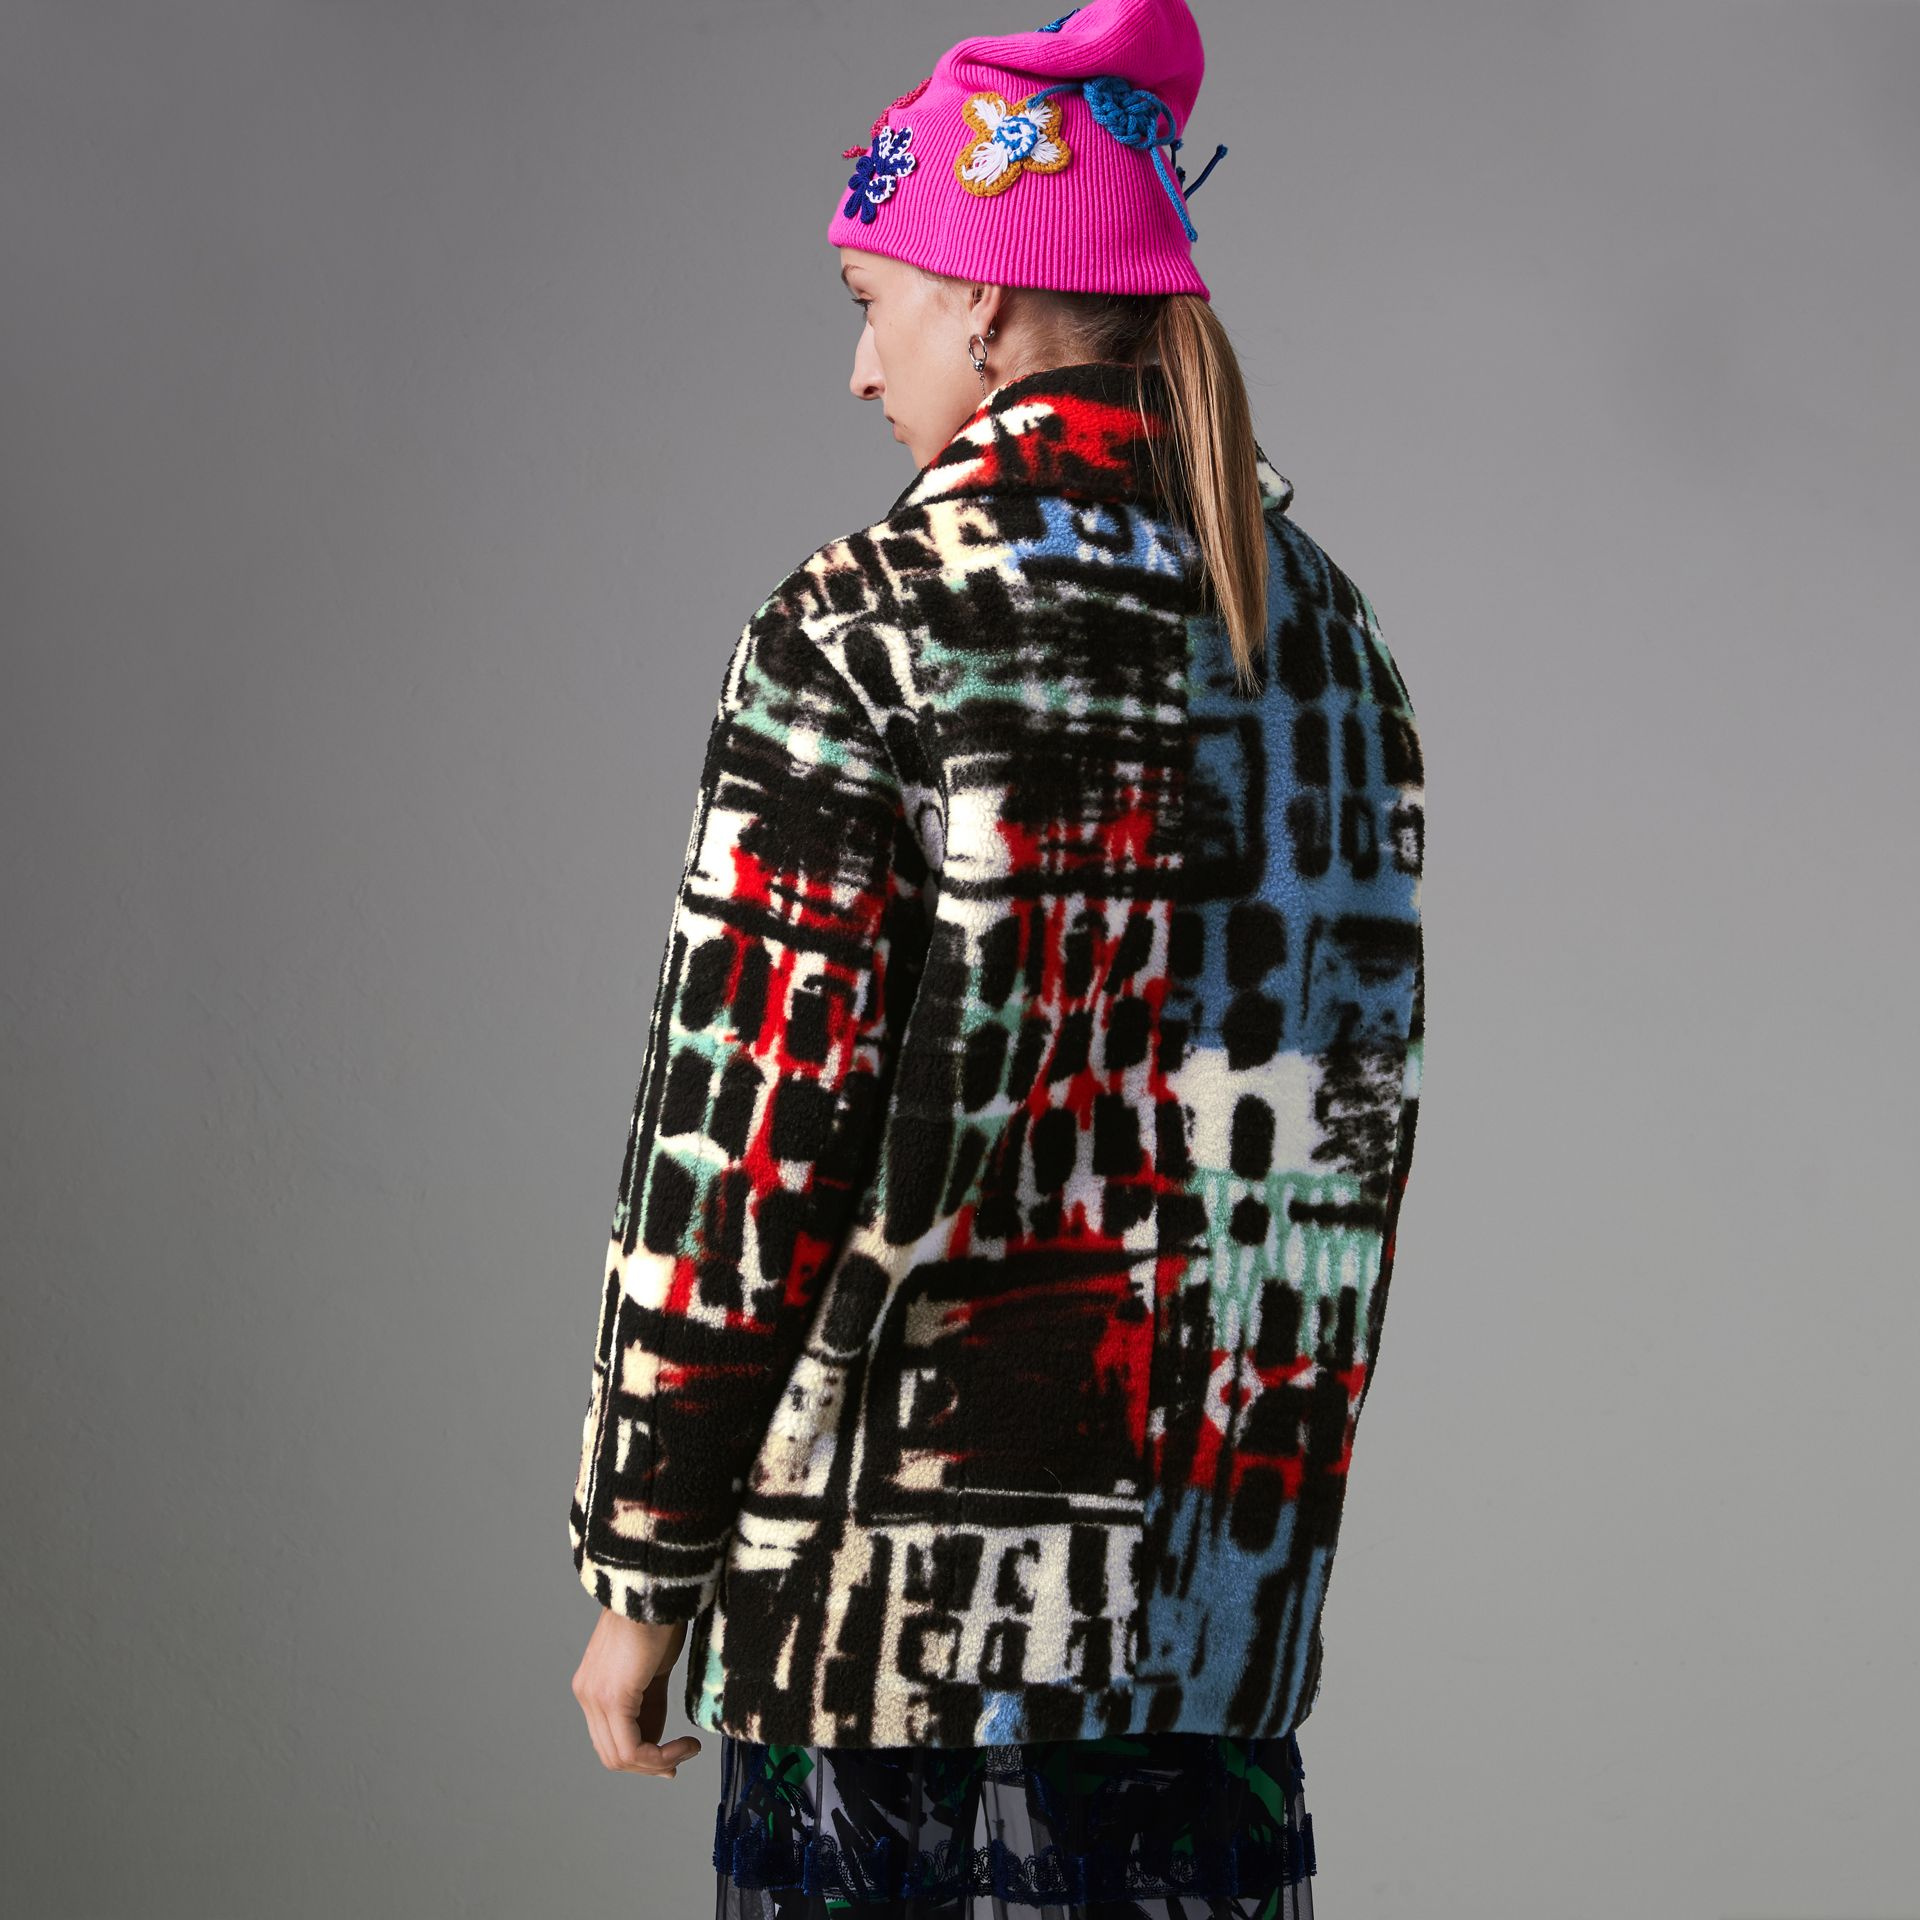 Graffiti Print Shearling Oversized Jacket in Steel Blue - Women | Burberry - gallery image 2